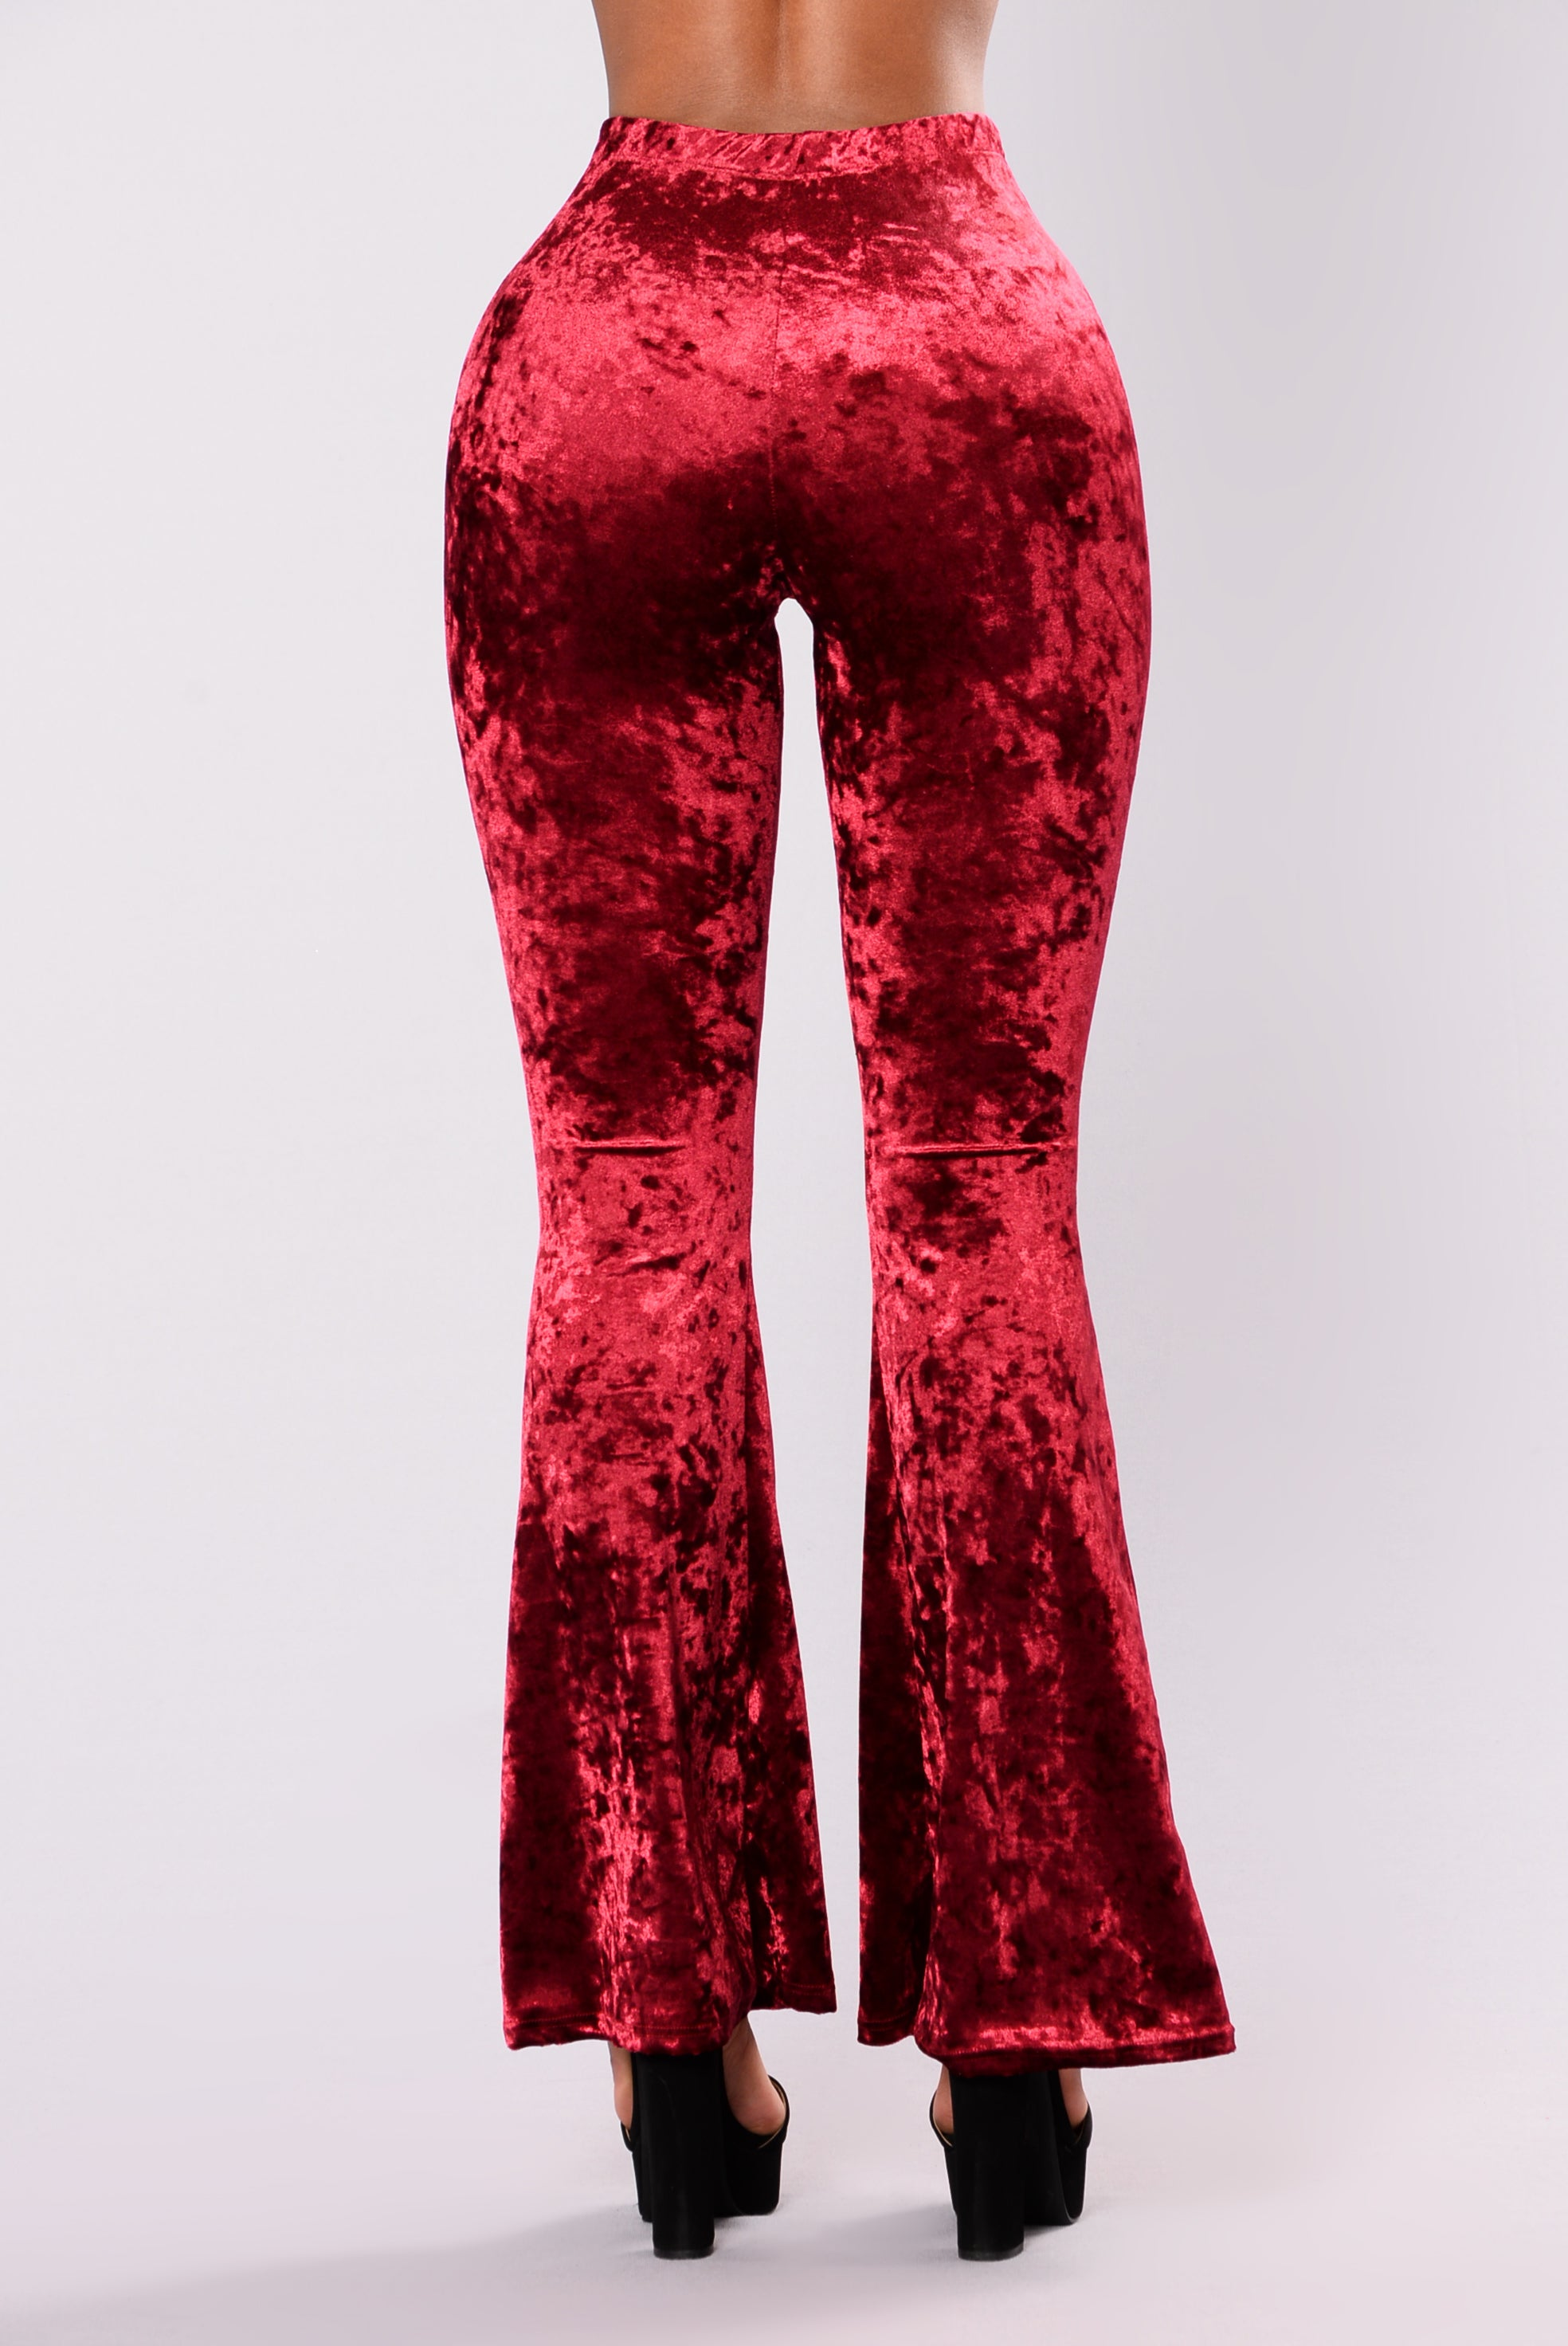 Karlianna Velvet Pants Burgundy